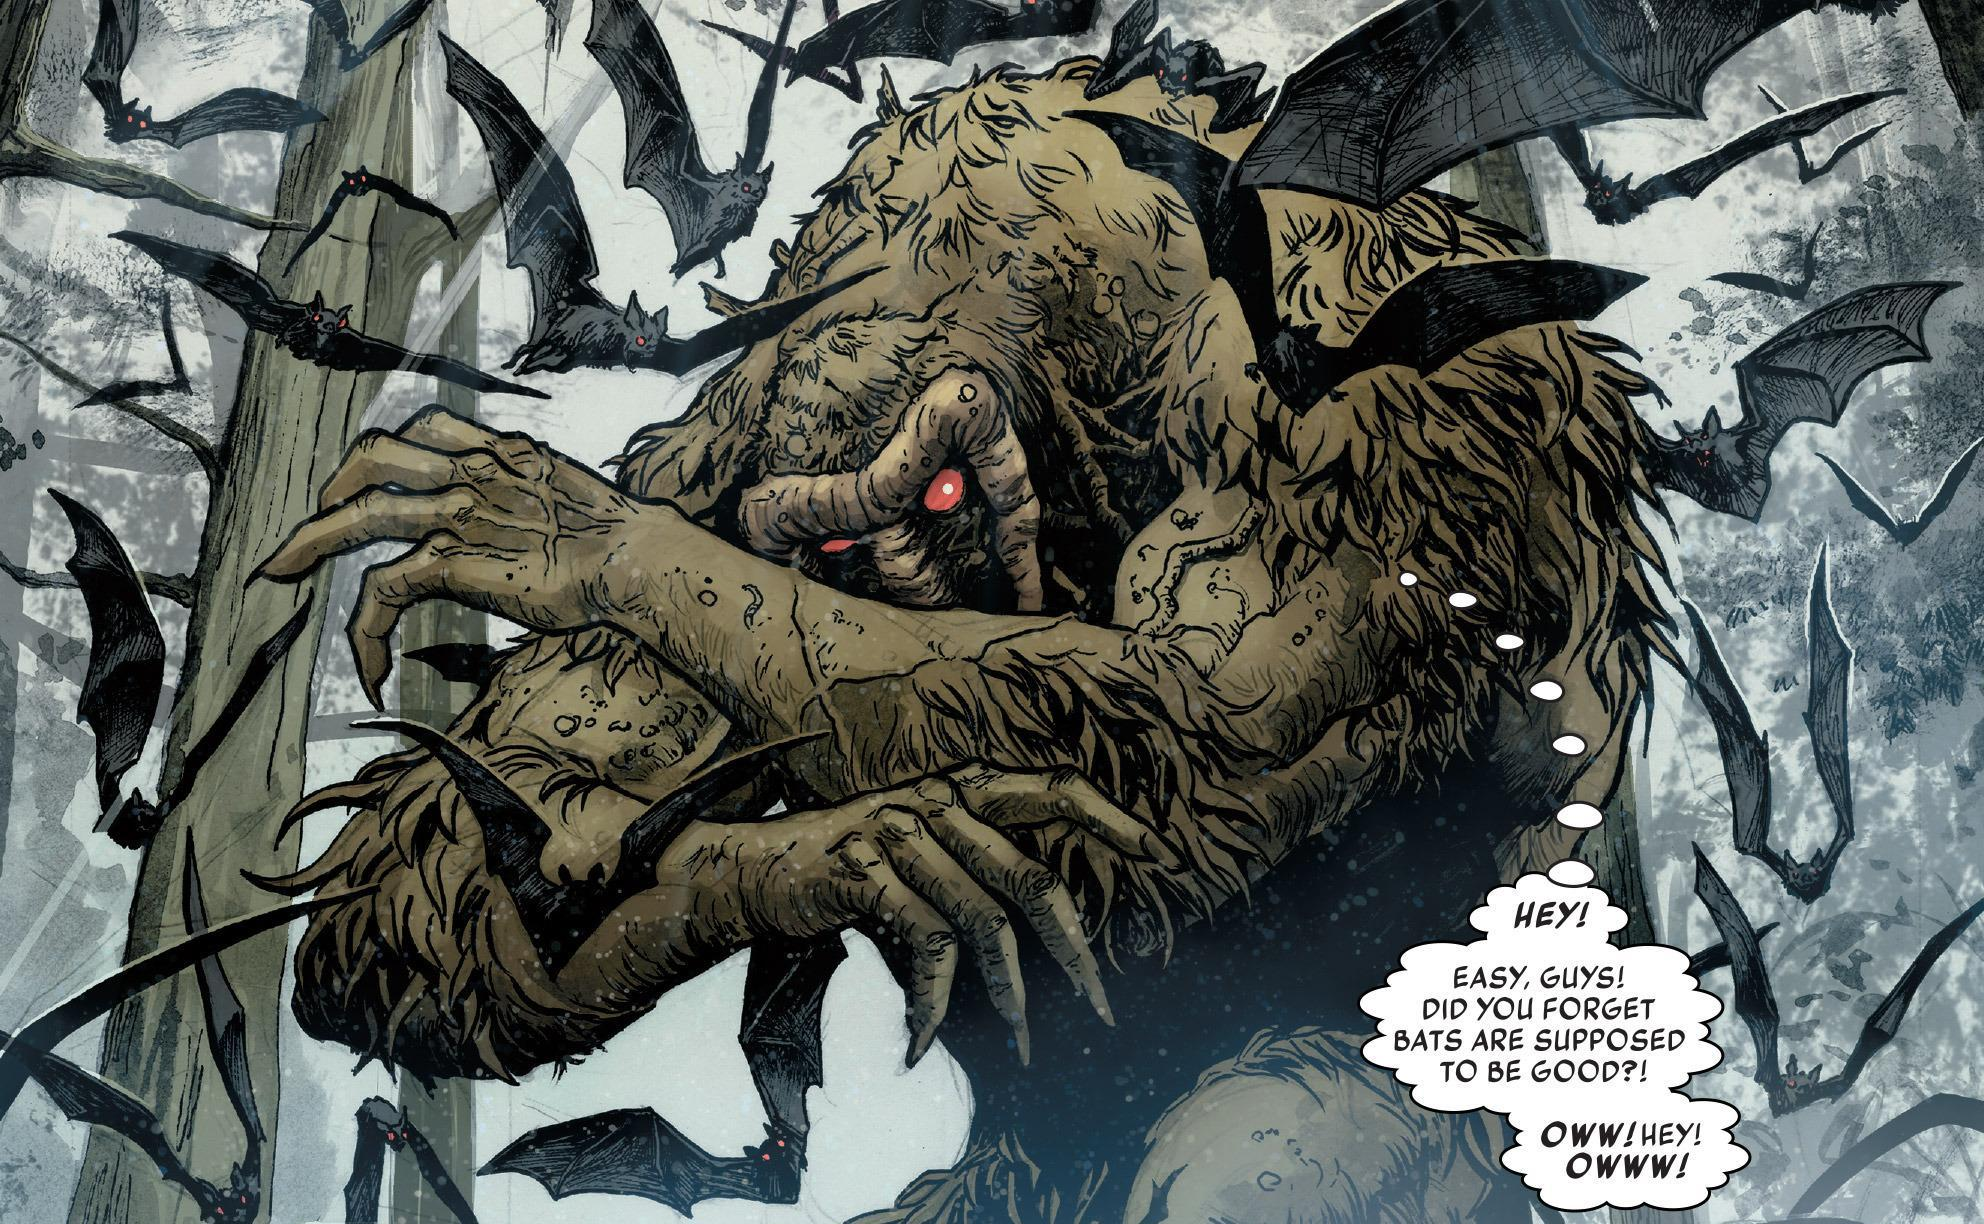 5. Strange-Thing. An extremely powerful combination of Strange and Man-Thing, it possesses the best of both worlds. This version is among the most powerful magicians in the whole Marvel Universe. He has abilities to travel to different dimensions and to manipulate realities.